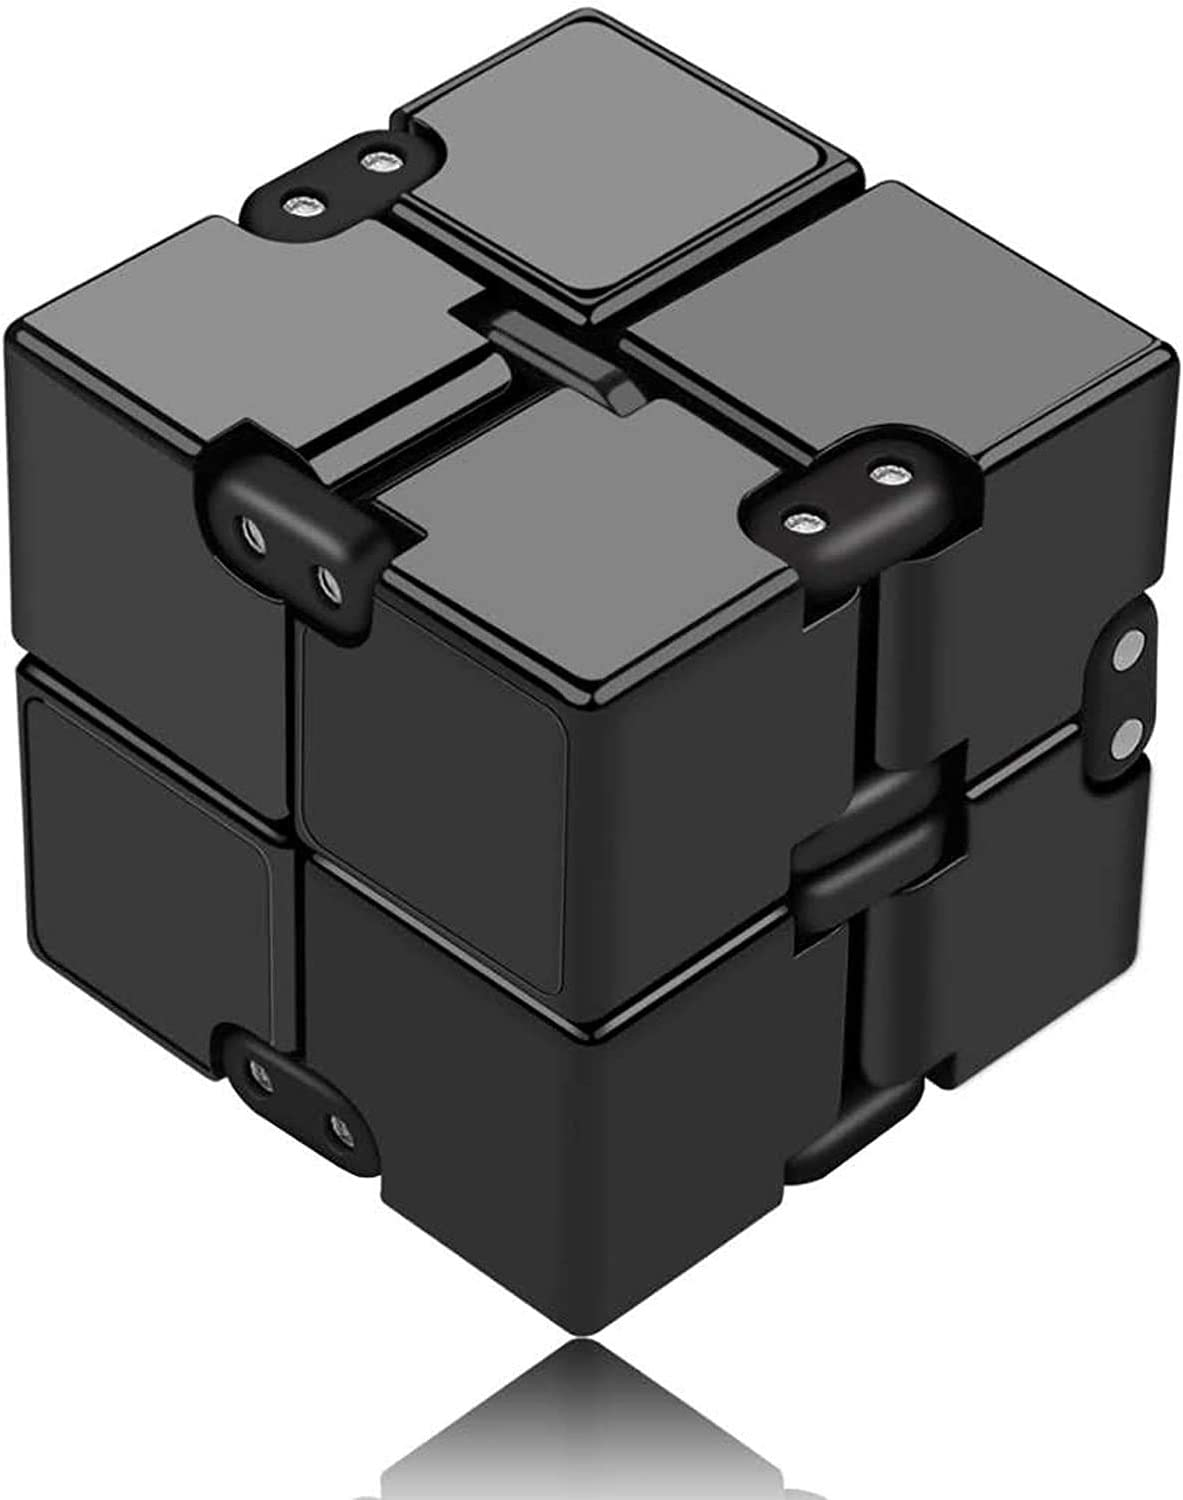 ss shovan Infinity Cube Fidget Toy, Hand Killing Time Transform Cubes Magic Cubes for Adult